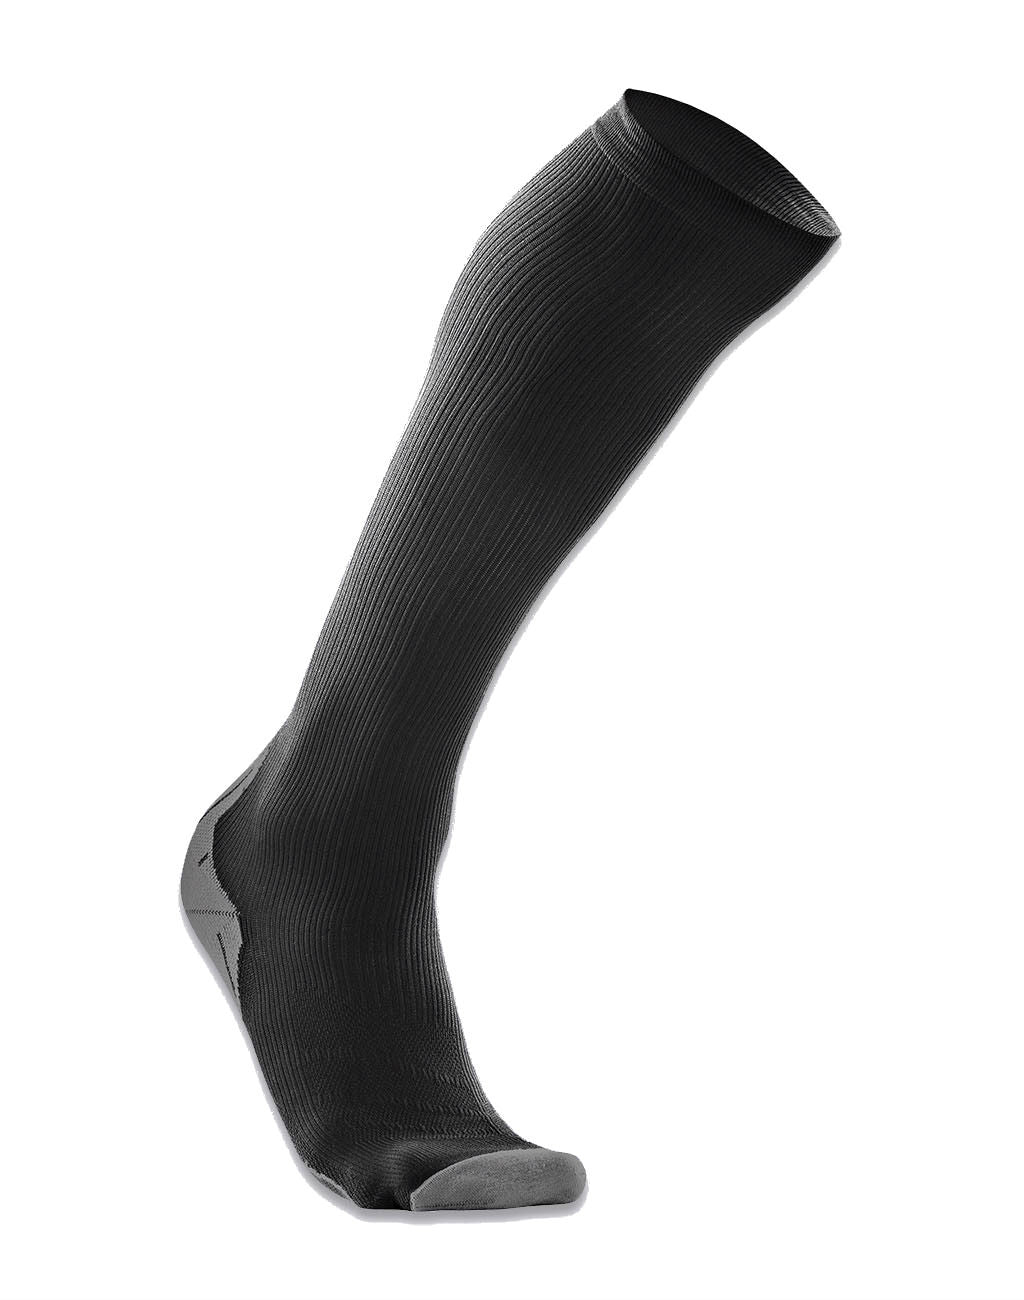 2XU Compression Recovery Socks (Men's)